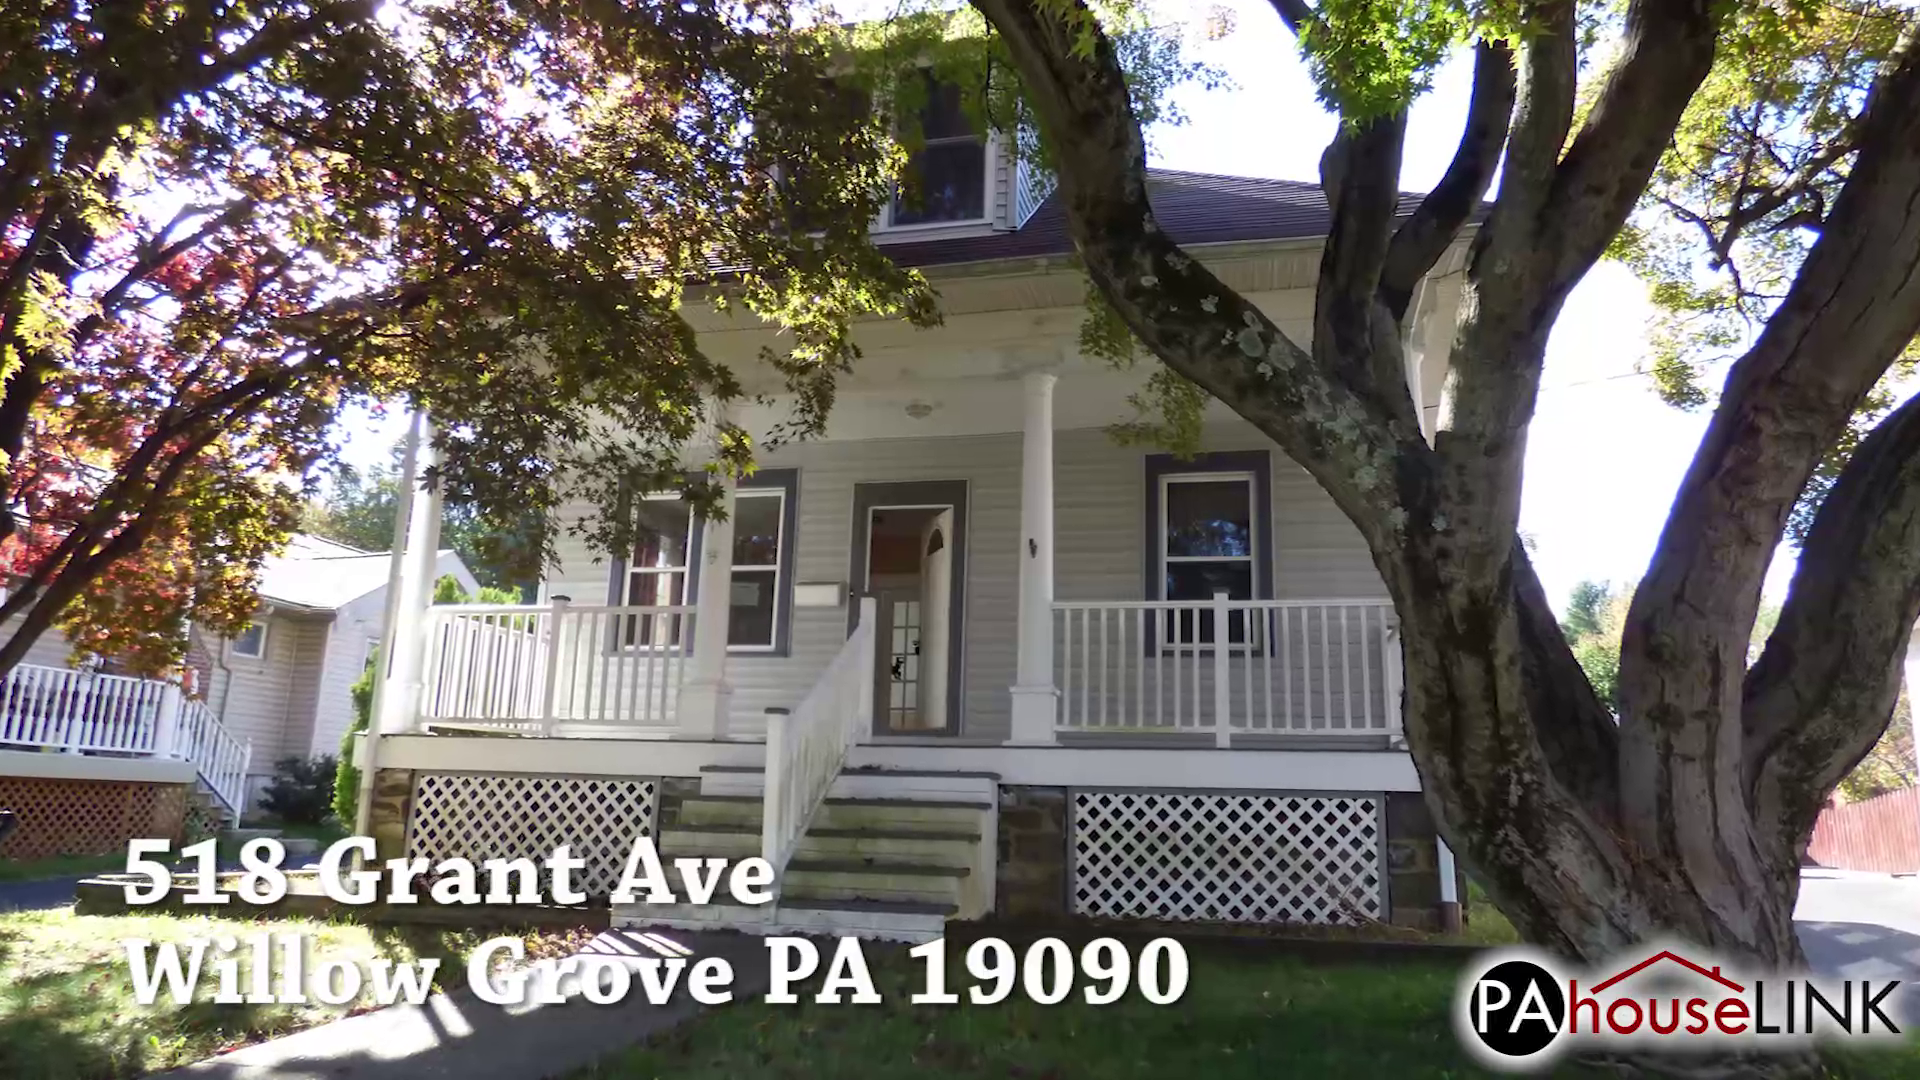 518 Grant Ave Willow Grove PA 19090 | Foreclosure Properties Willow Grove PA 19090